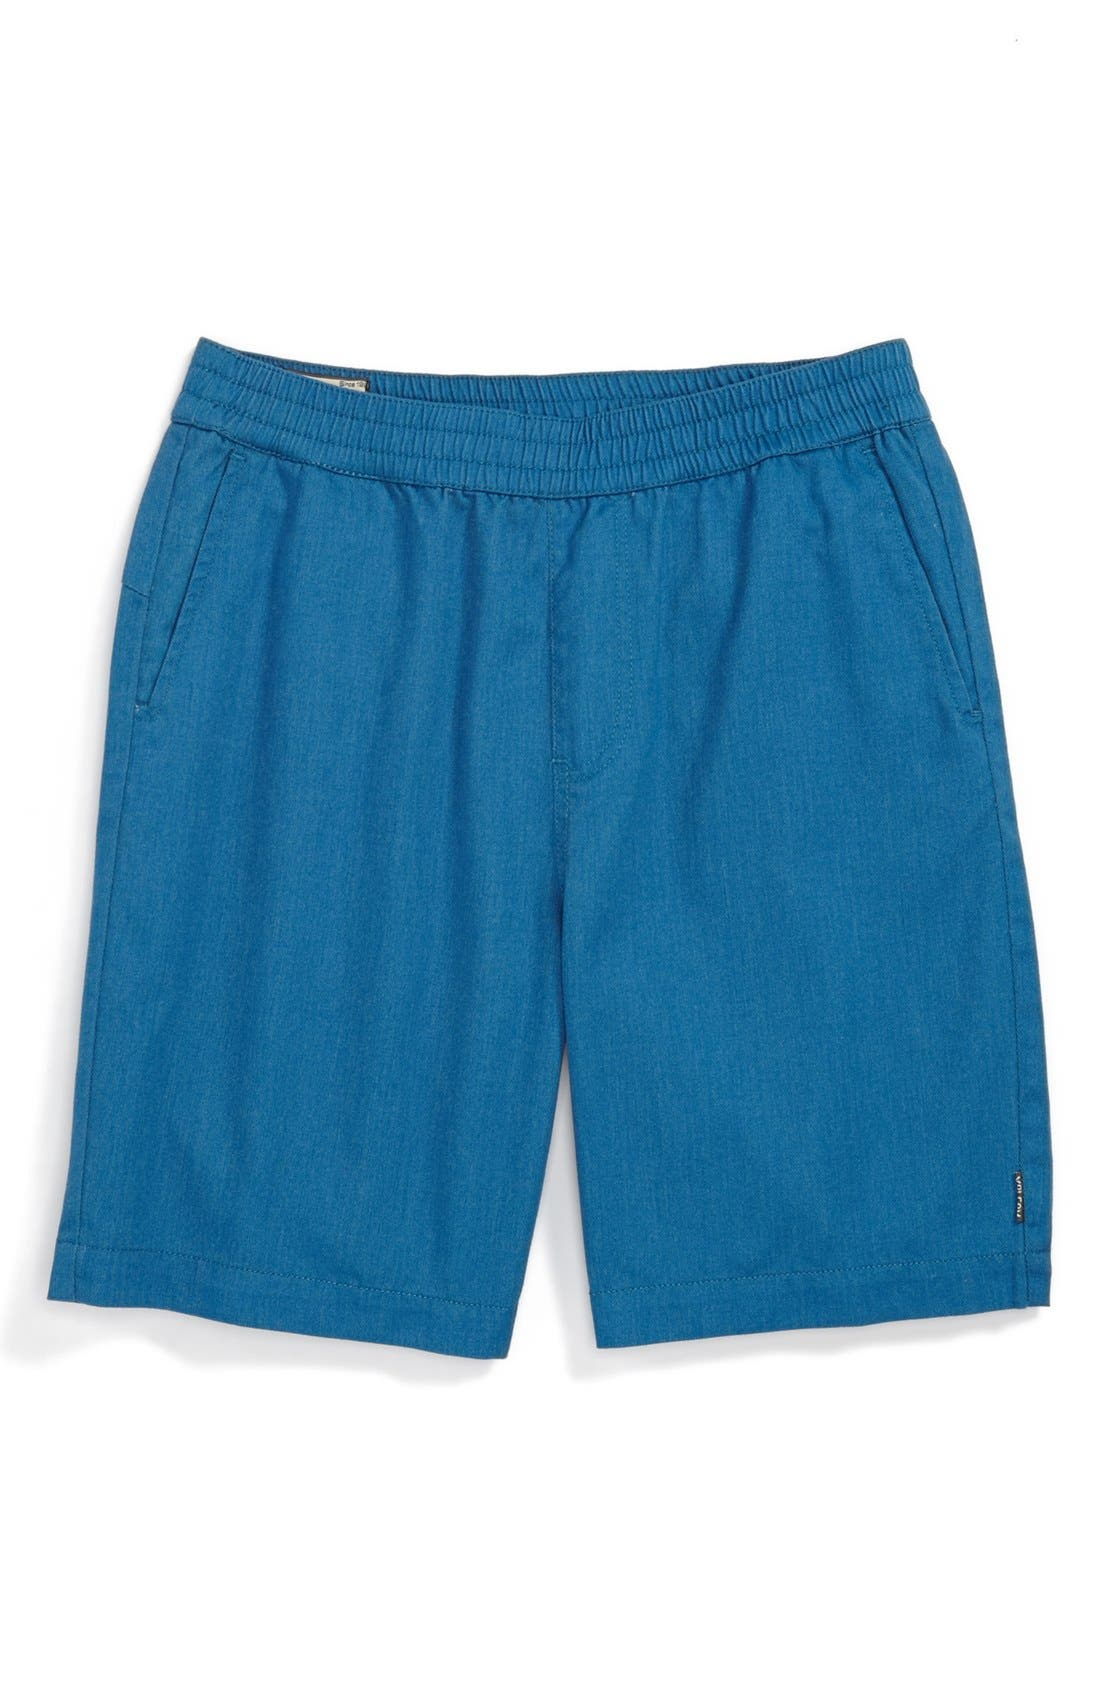 Main Image - Volcom Twill Shorts (Big Boys)